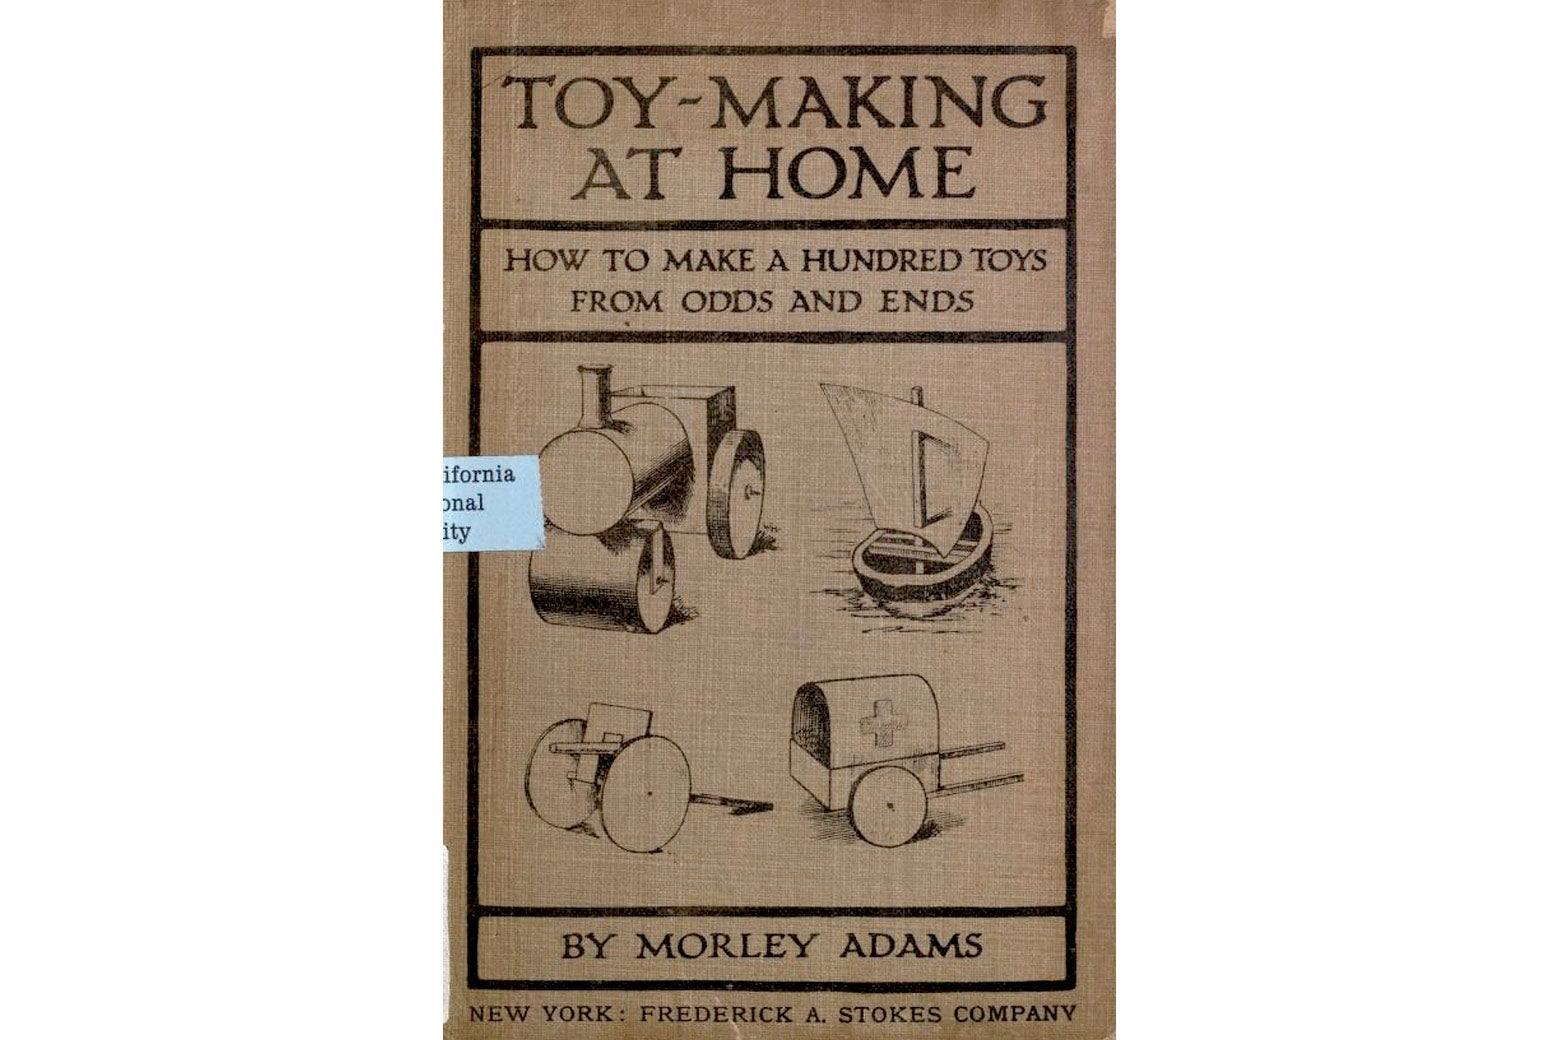 Toy-Making at Home cover